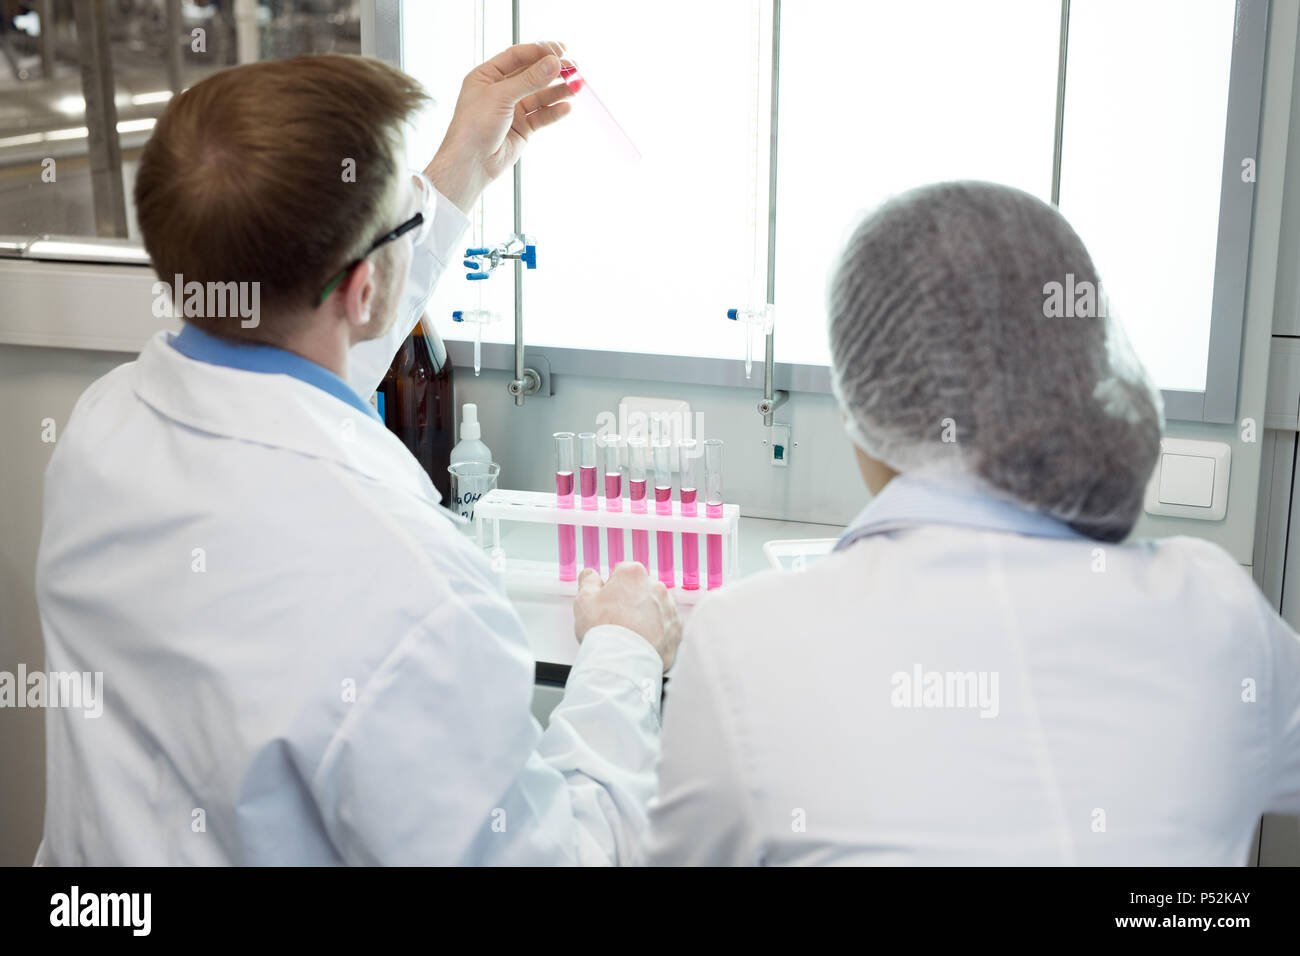 Microbiologists studying pink solution in test tube - Stock Image